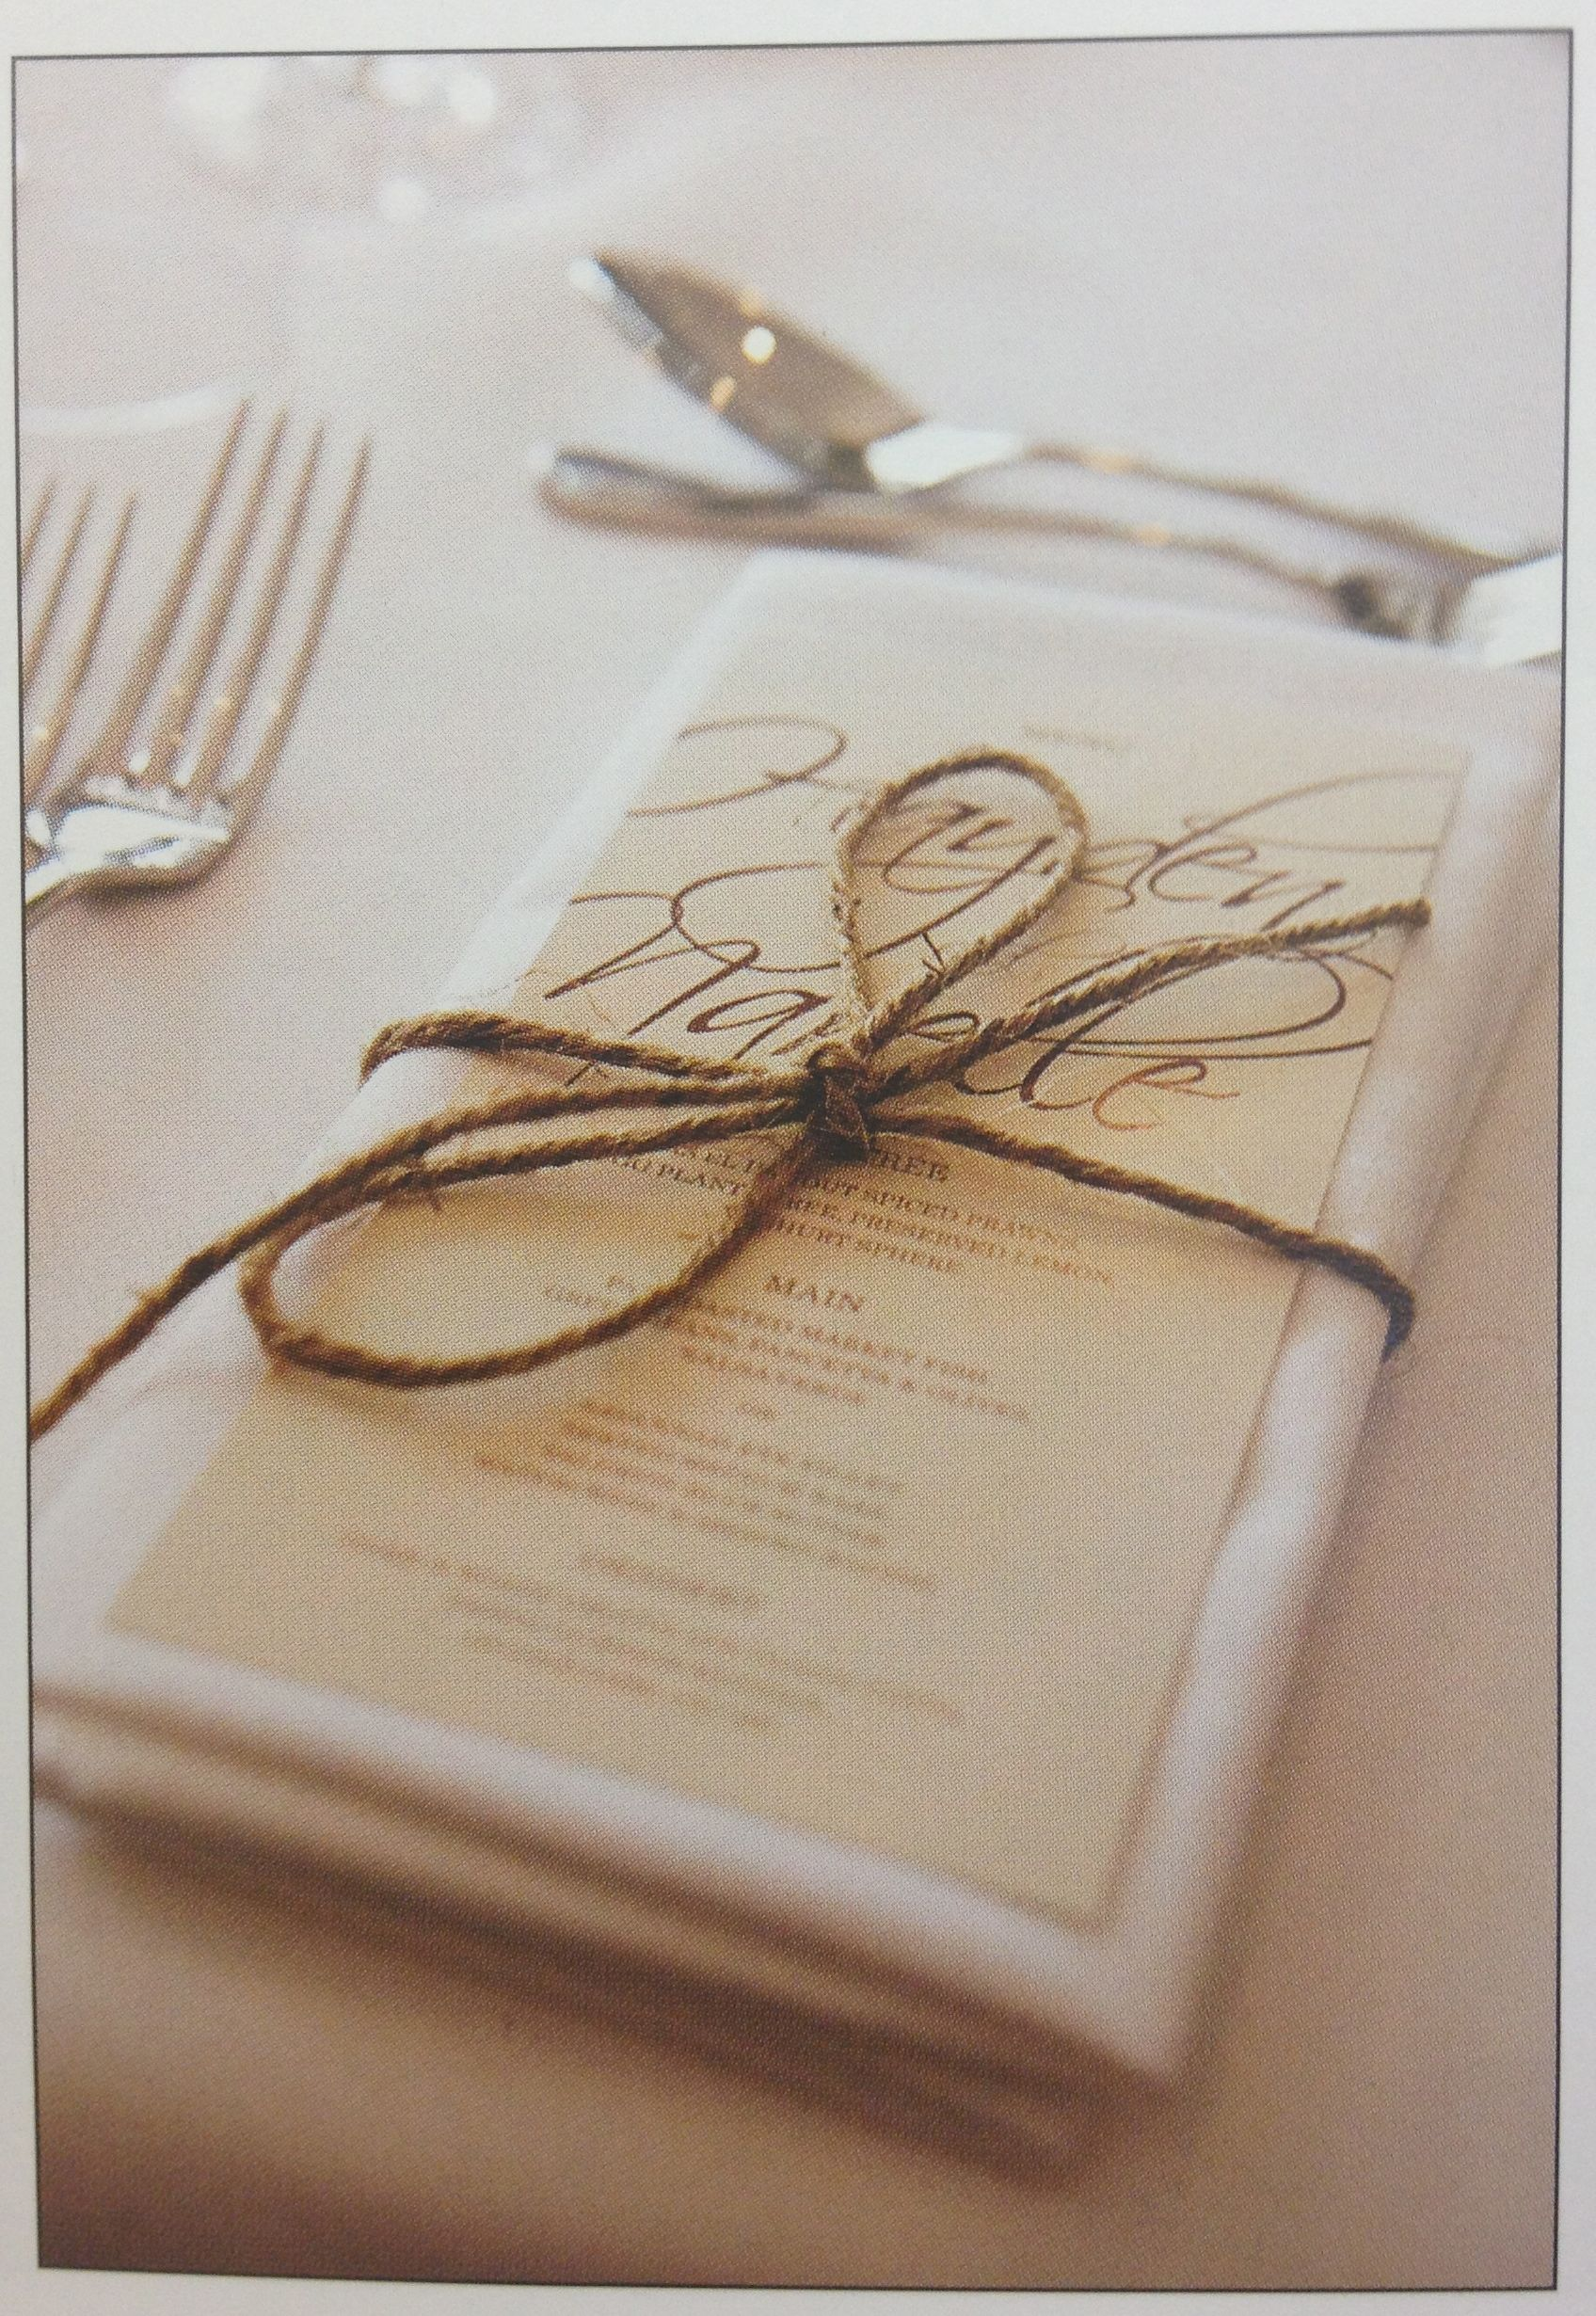 napkins for wedding is simple and easy to make but give a hand created touch place setting tweed or twine tied in a bow with the menu printed and placed on the napkin